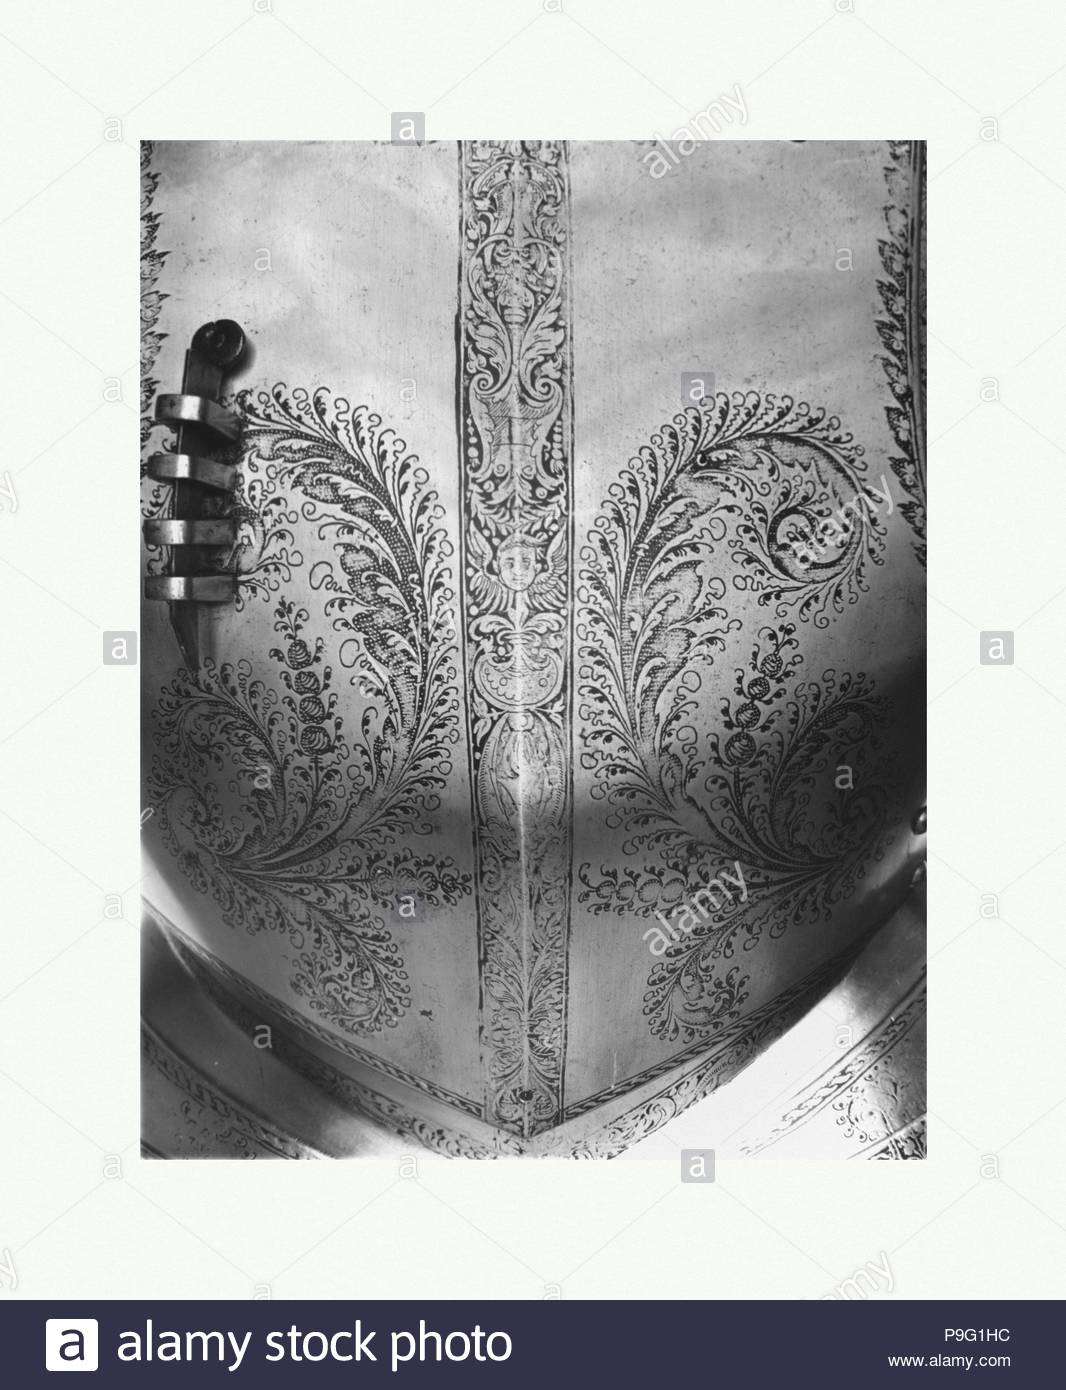 Breastplate, dated 1540, German, Steel, H. 17 in. (43.2 cm); W. 15 7/8 in. (40.3 cm); Wt. 7 lb. 12 oz. (3515 g), Armor Parts-Breastplates. - Stock Image